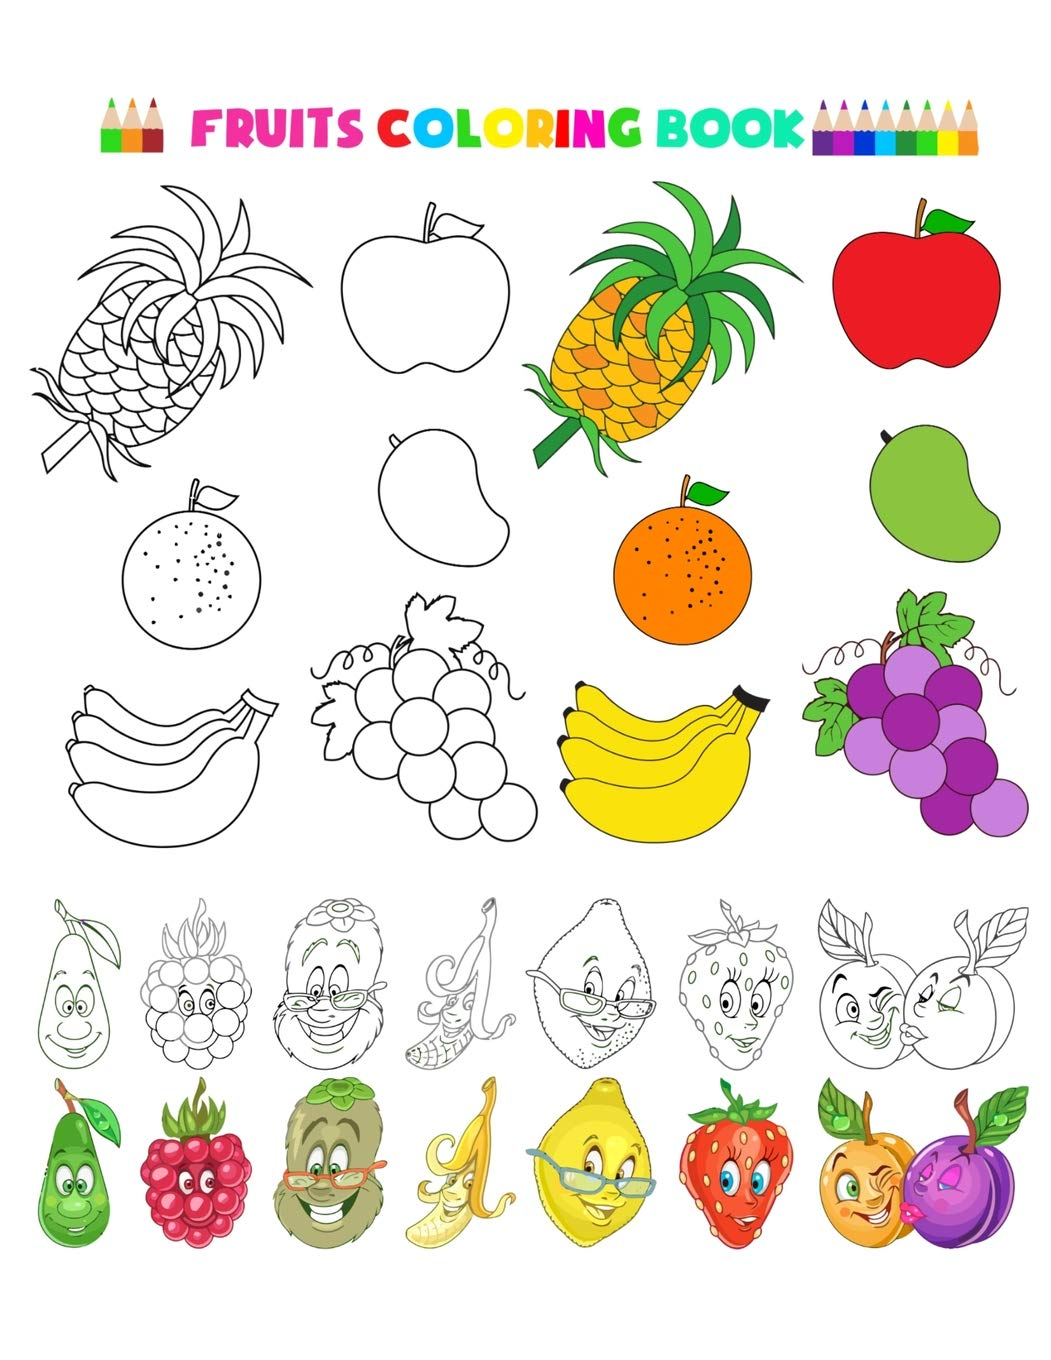 - Fruits Coloring Book: Fruits And Vegetables Baby Activity Book For